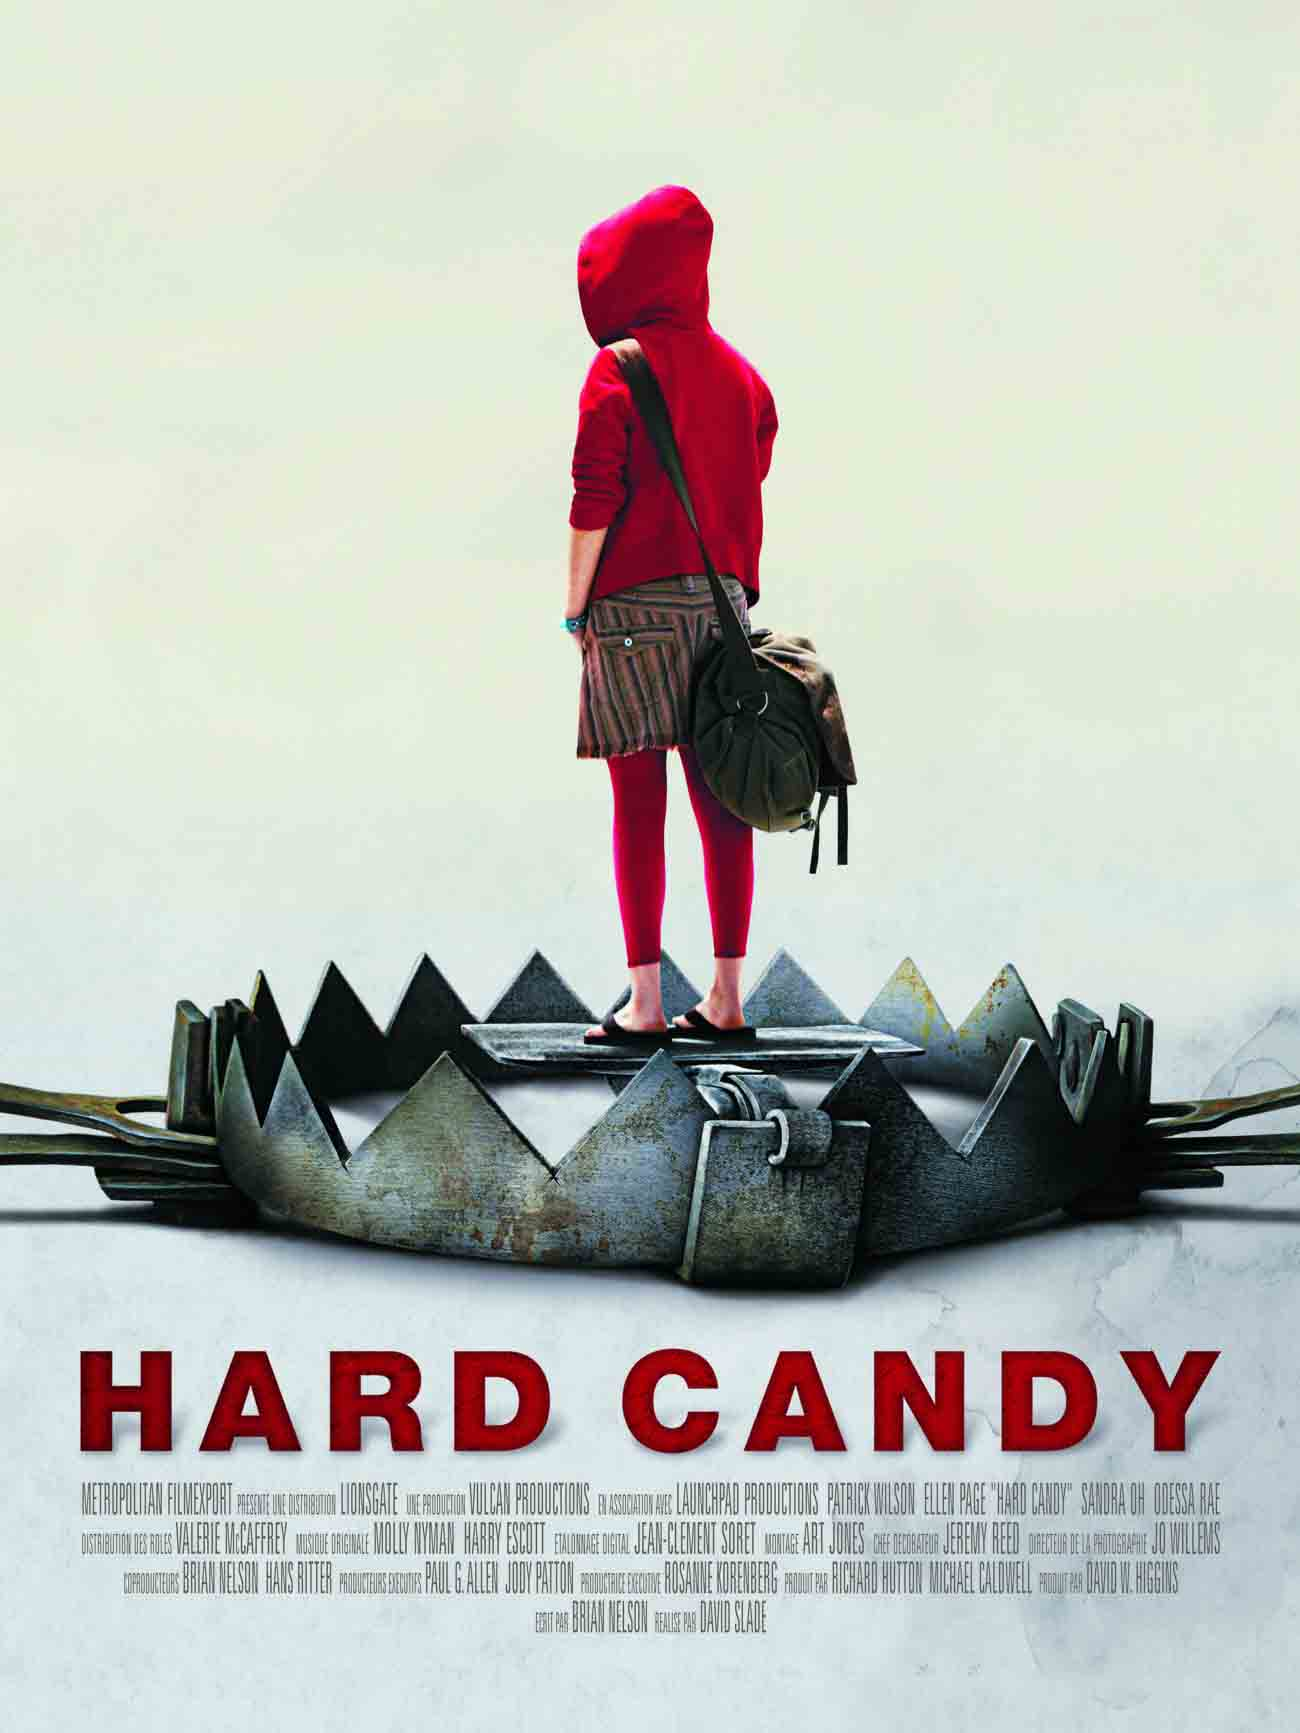 : Hard Candy 2005 German dtsrd 1080p BluRay avc Remux iNCEPTiON